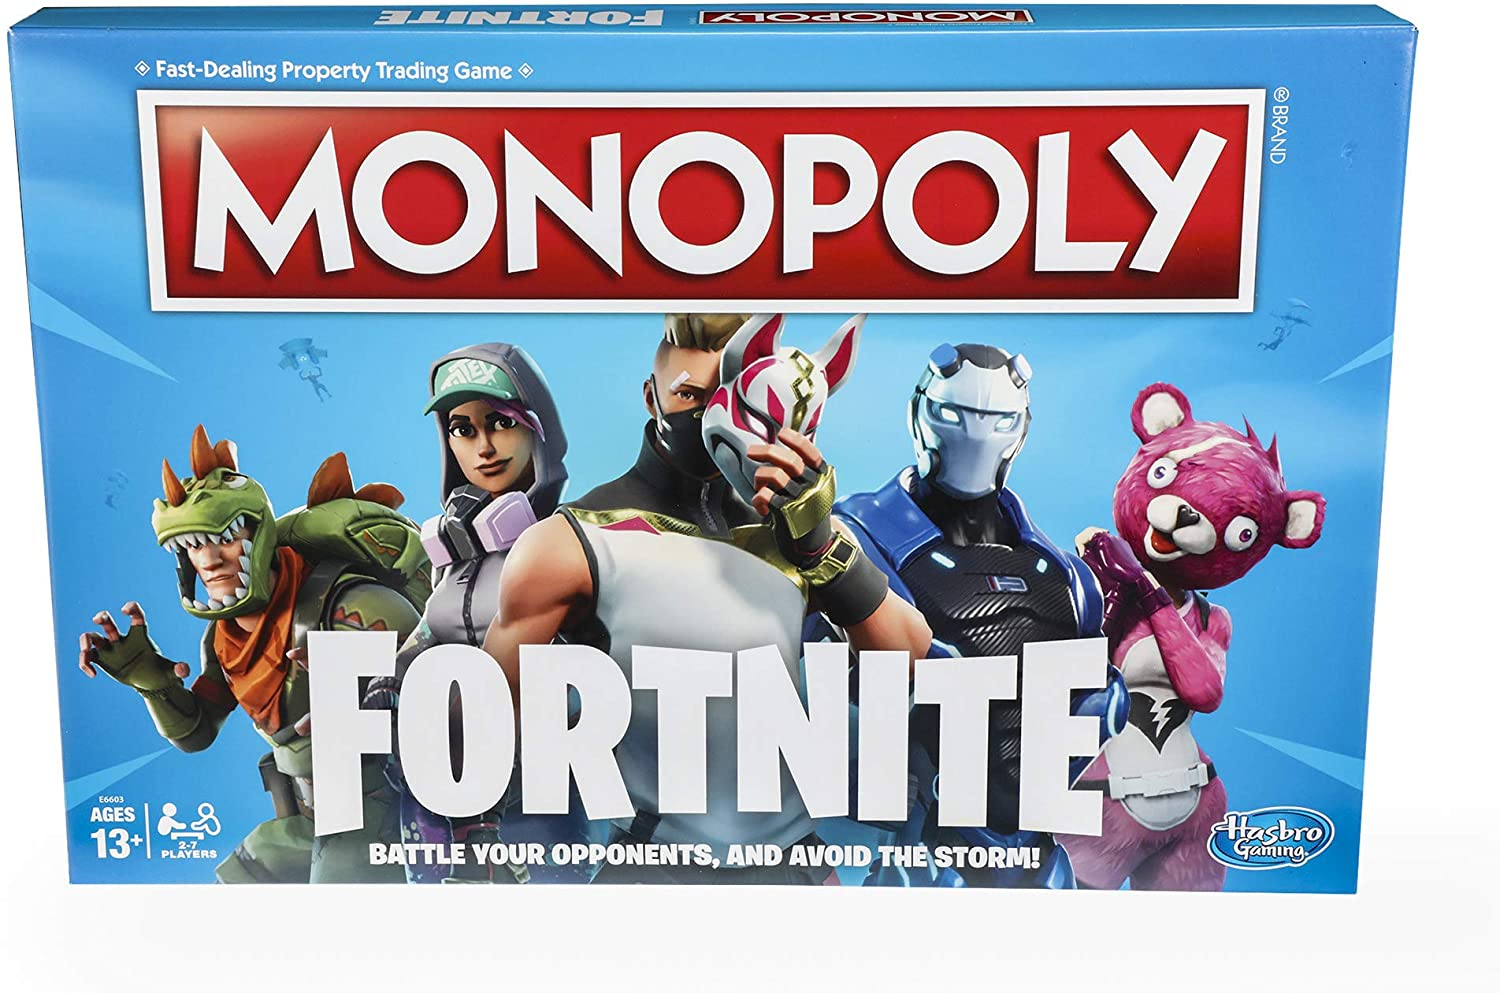 The Fortnite Monopoly box art, emblazoned with the various characters in the game.